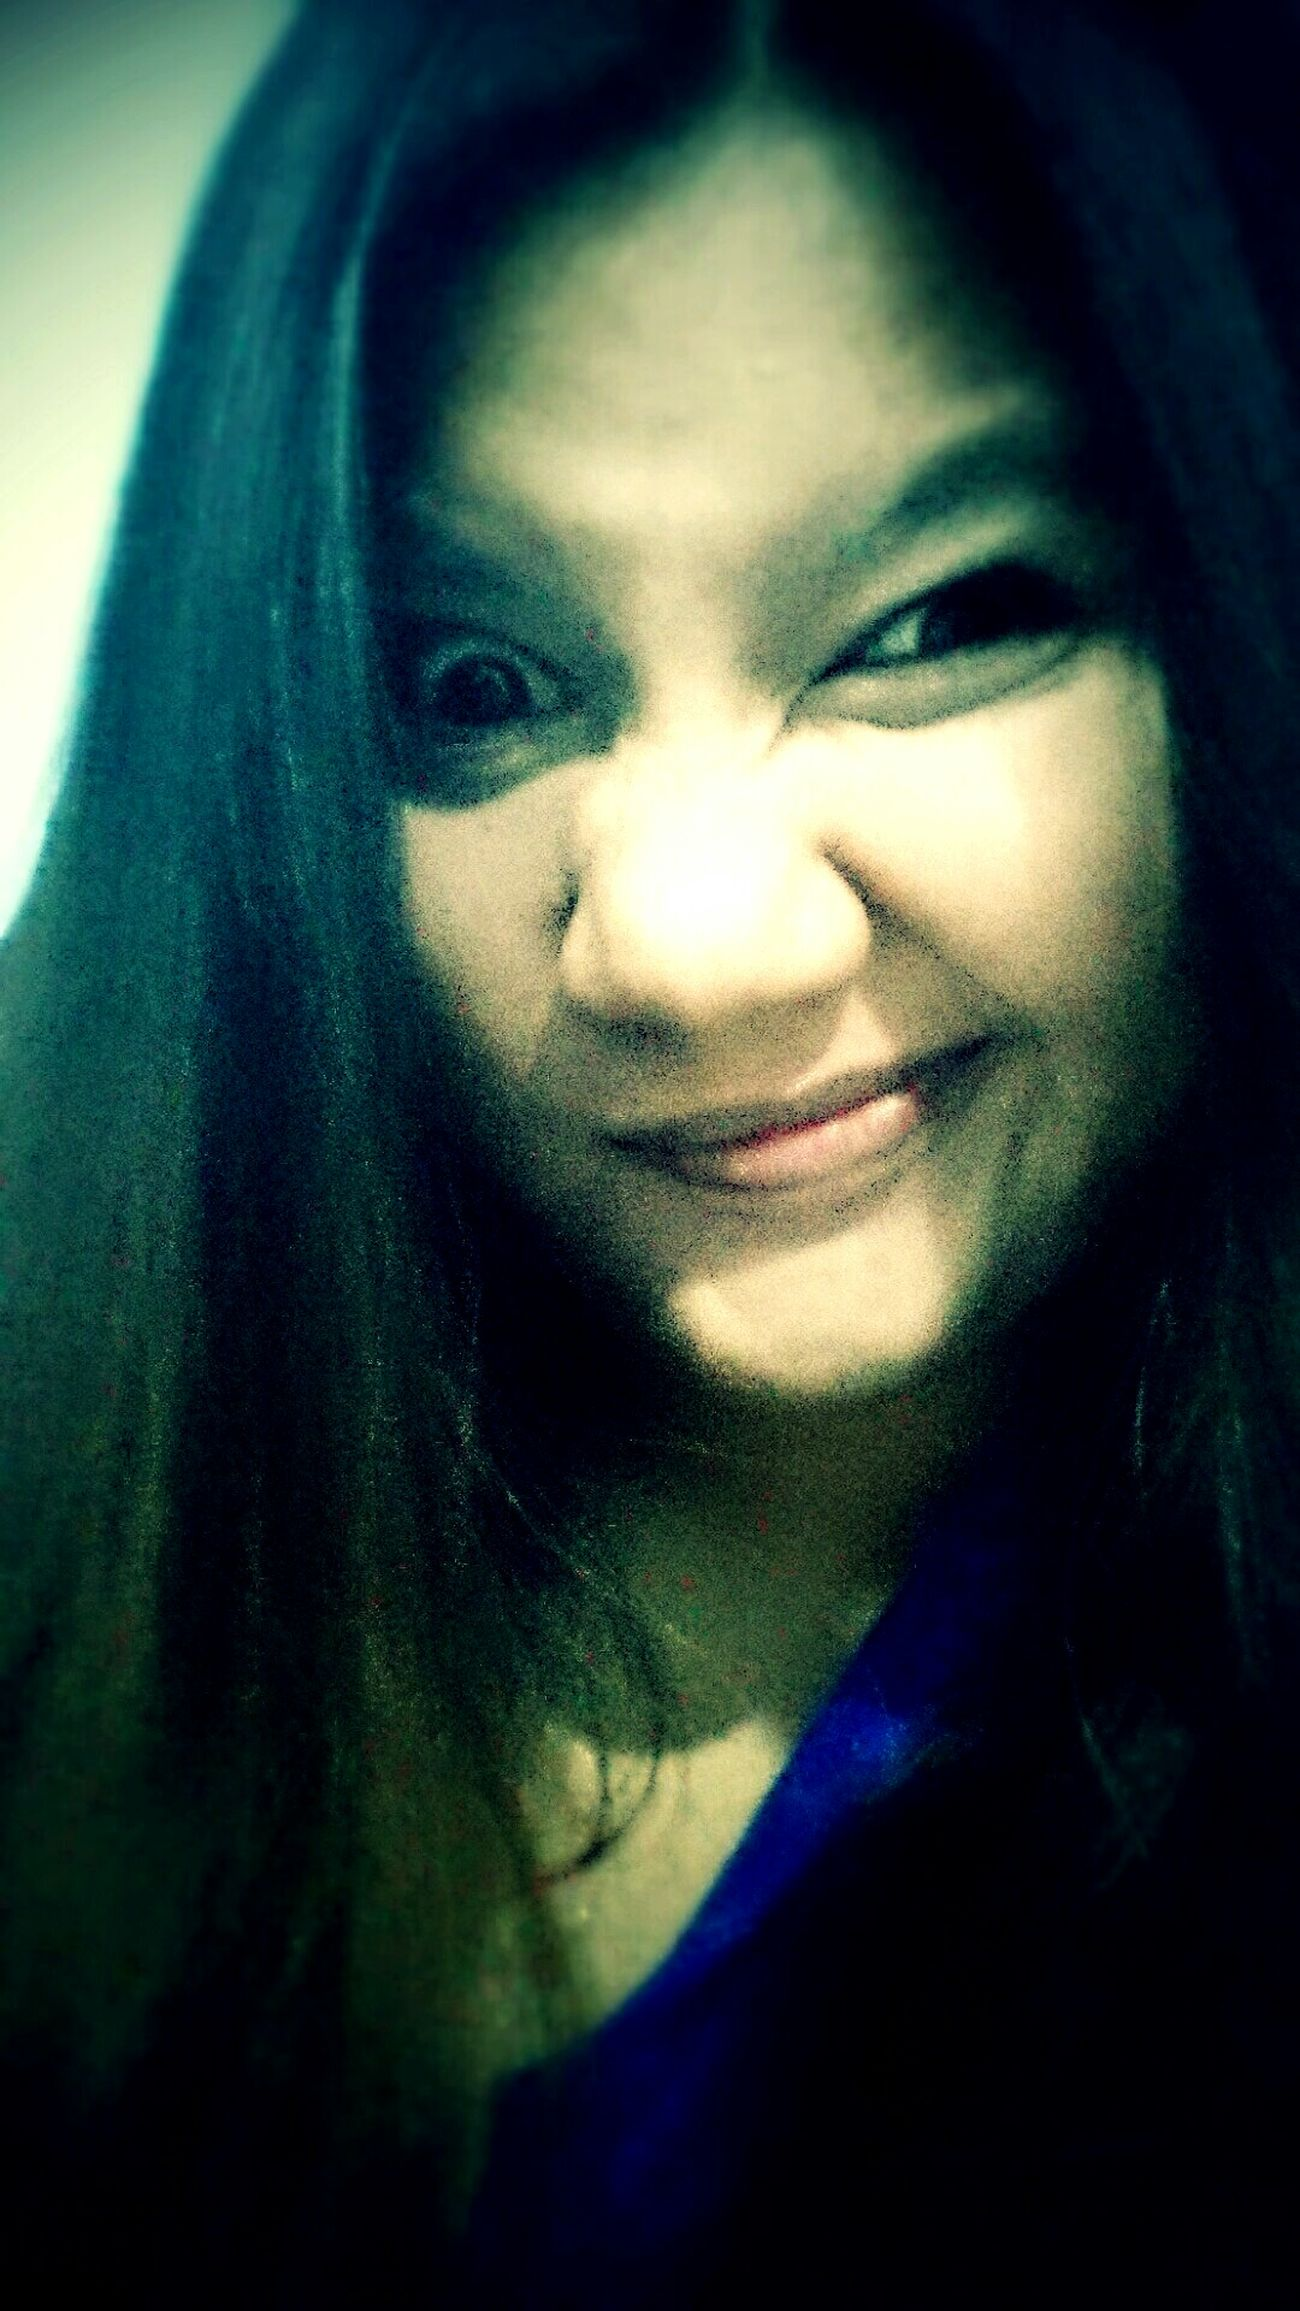 Weirdography Weirdfaces Weirdselfie